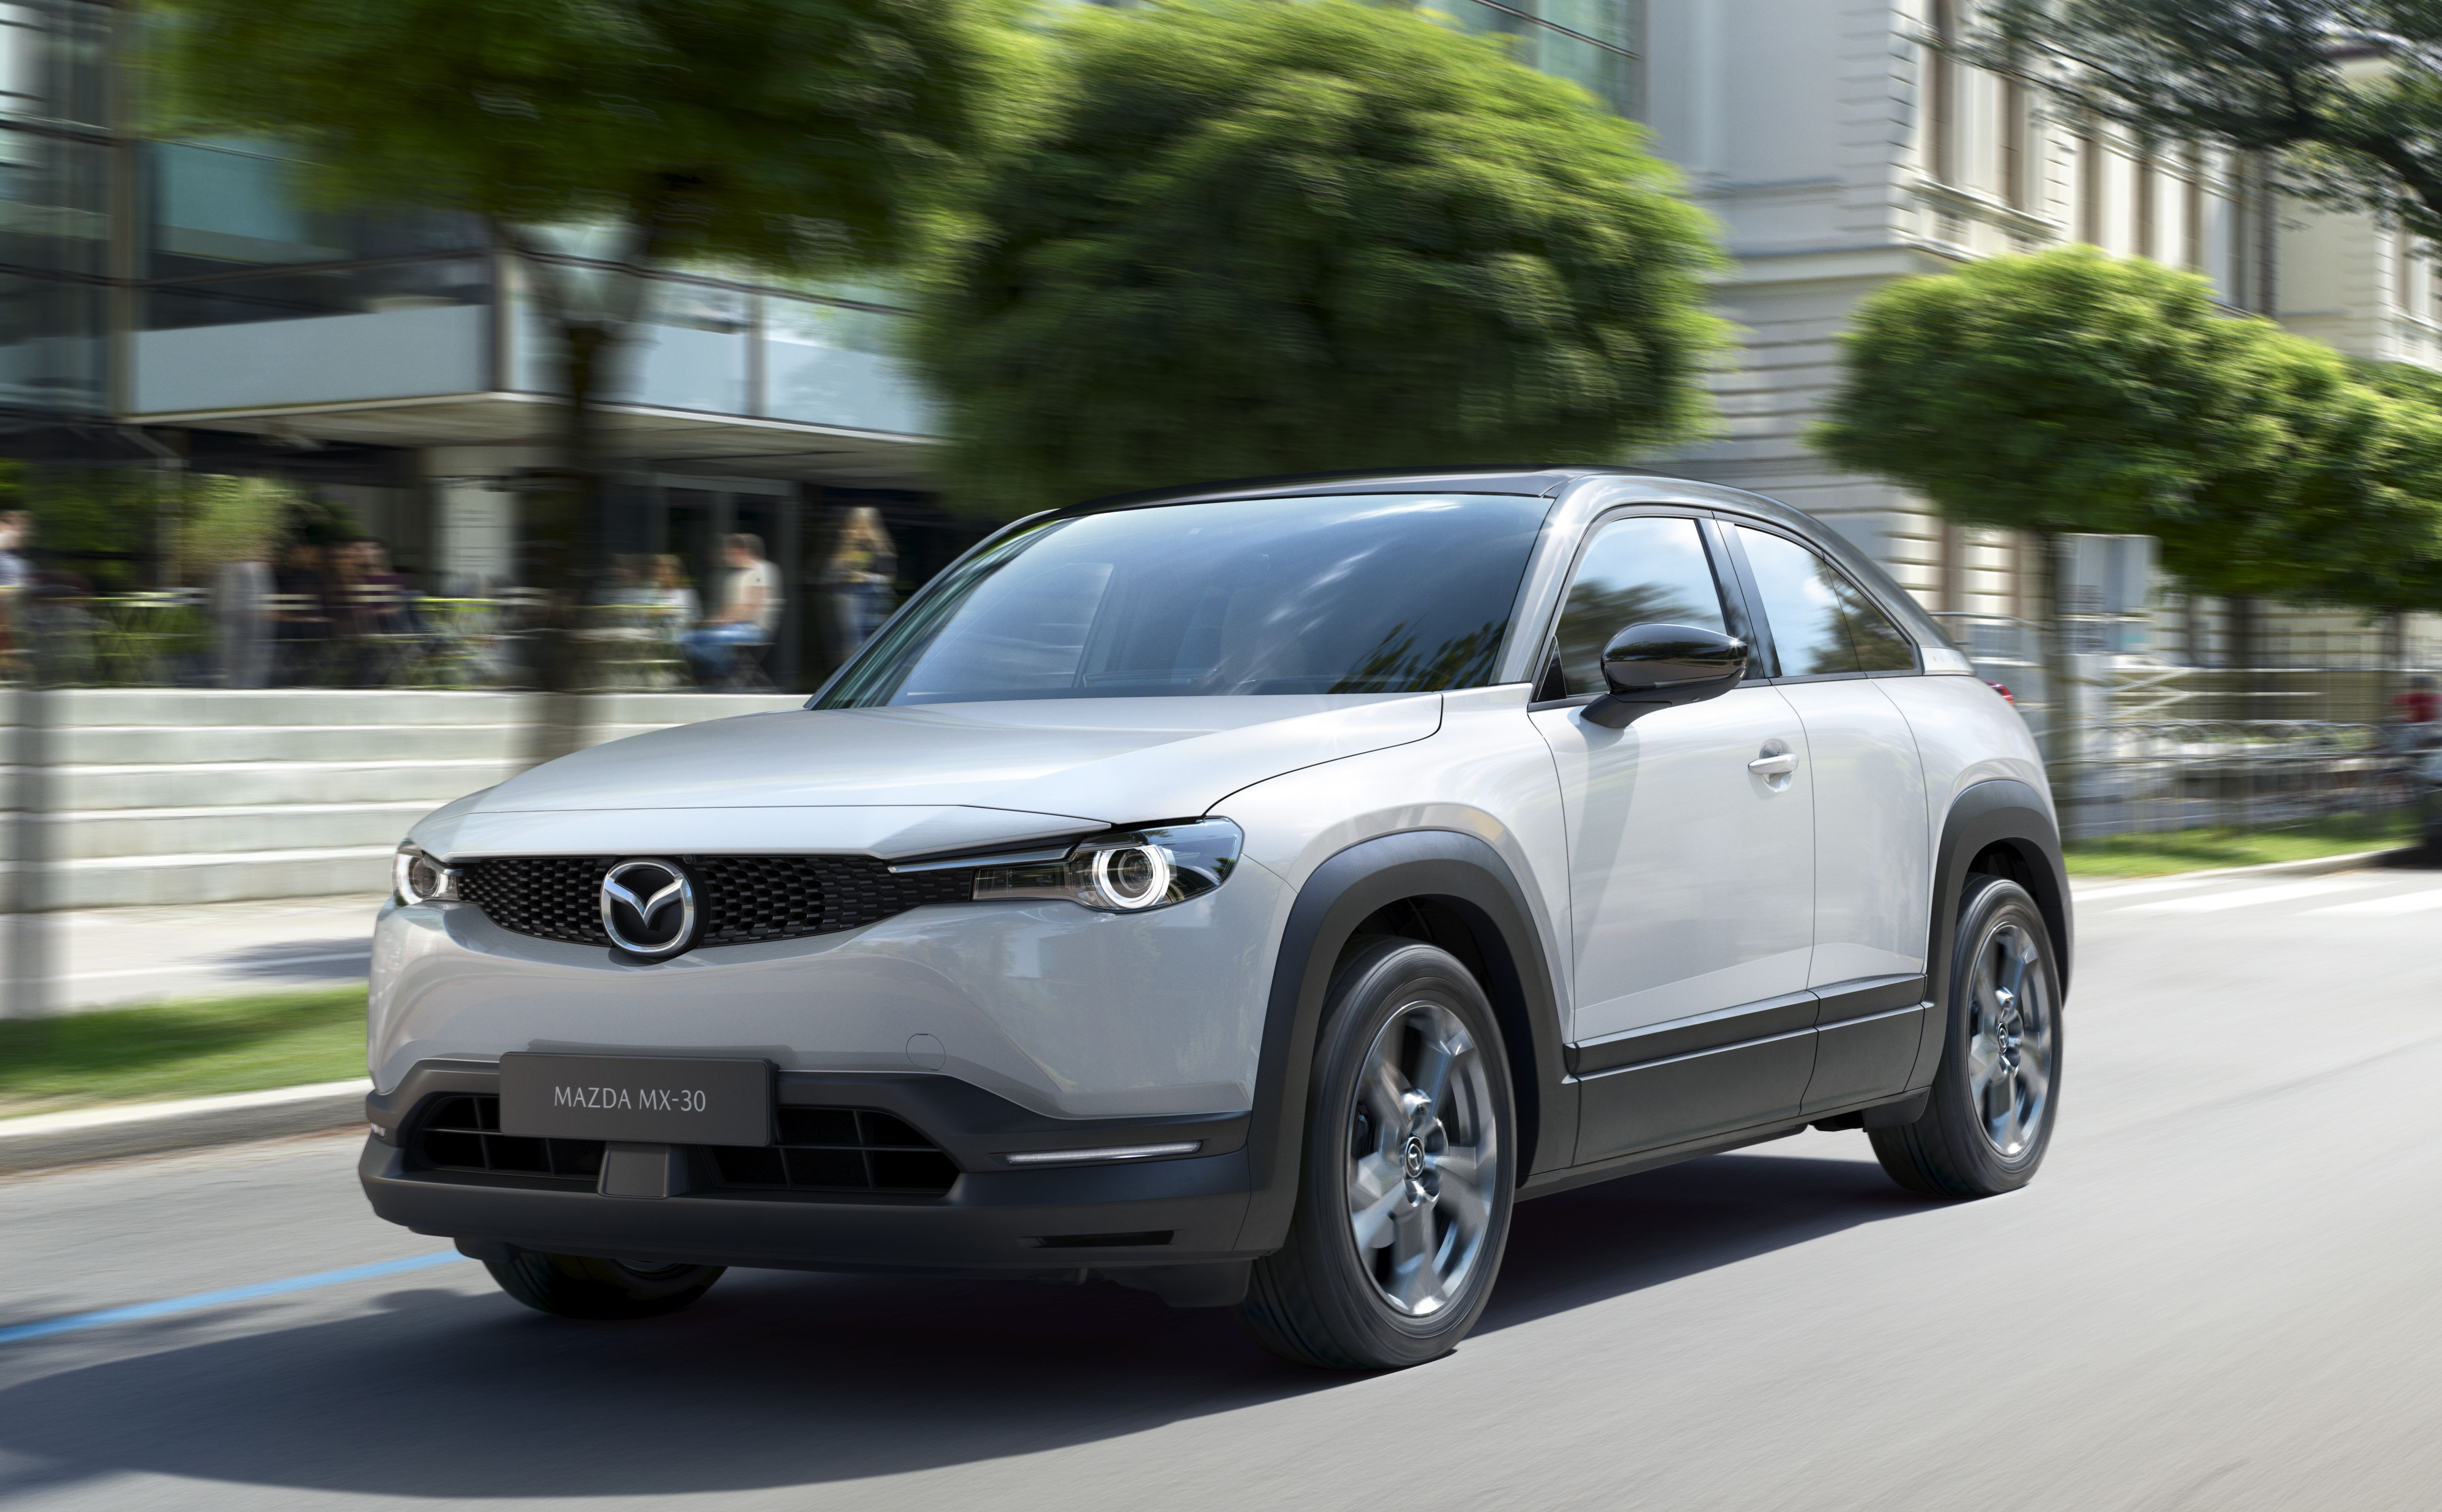 The 2020 Mazda Mx 30 Electric Crossover Has Sporty Ambitions Mazda Electric Crossover Mazda Mx